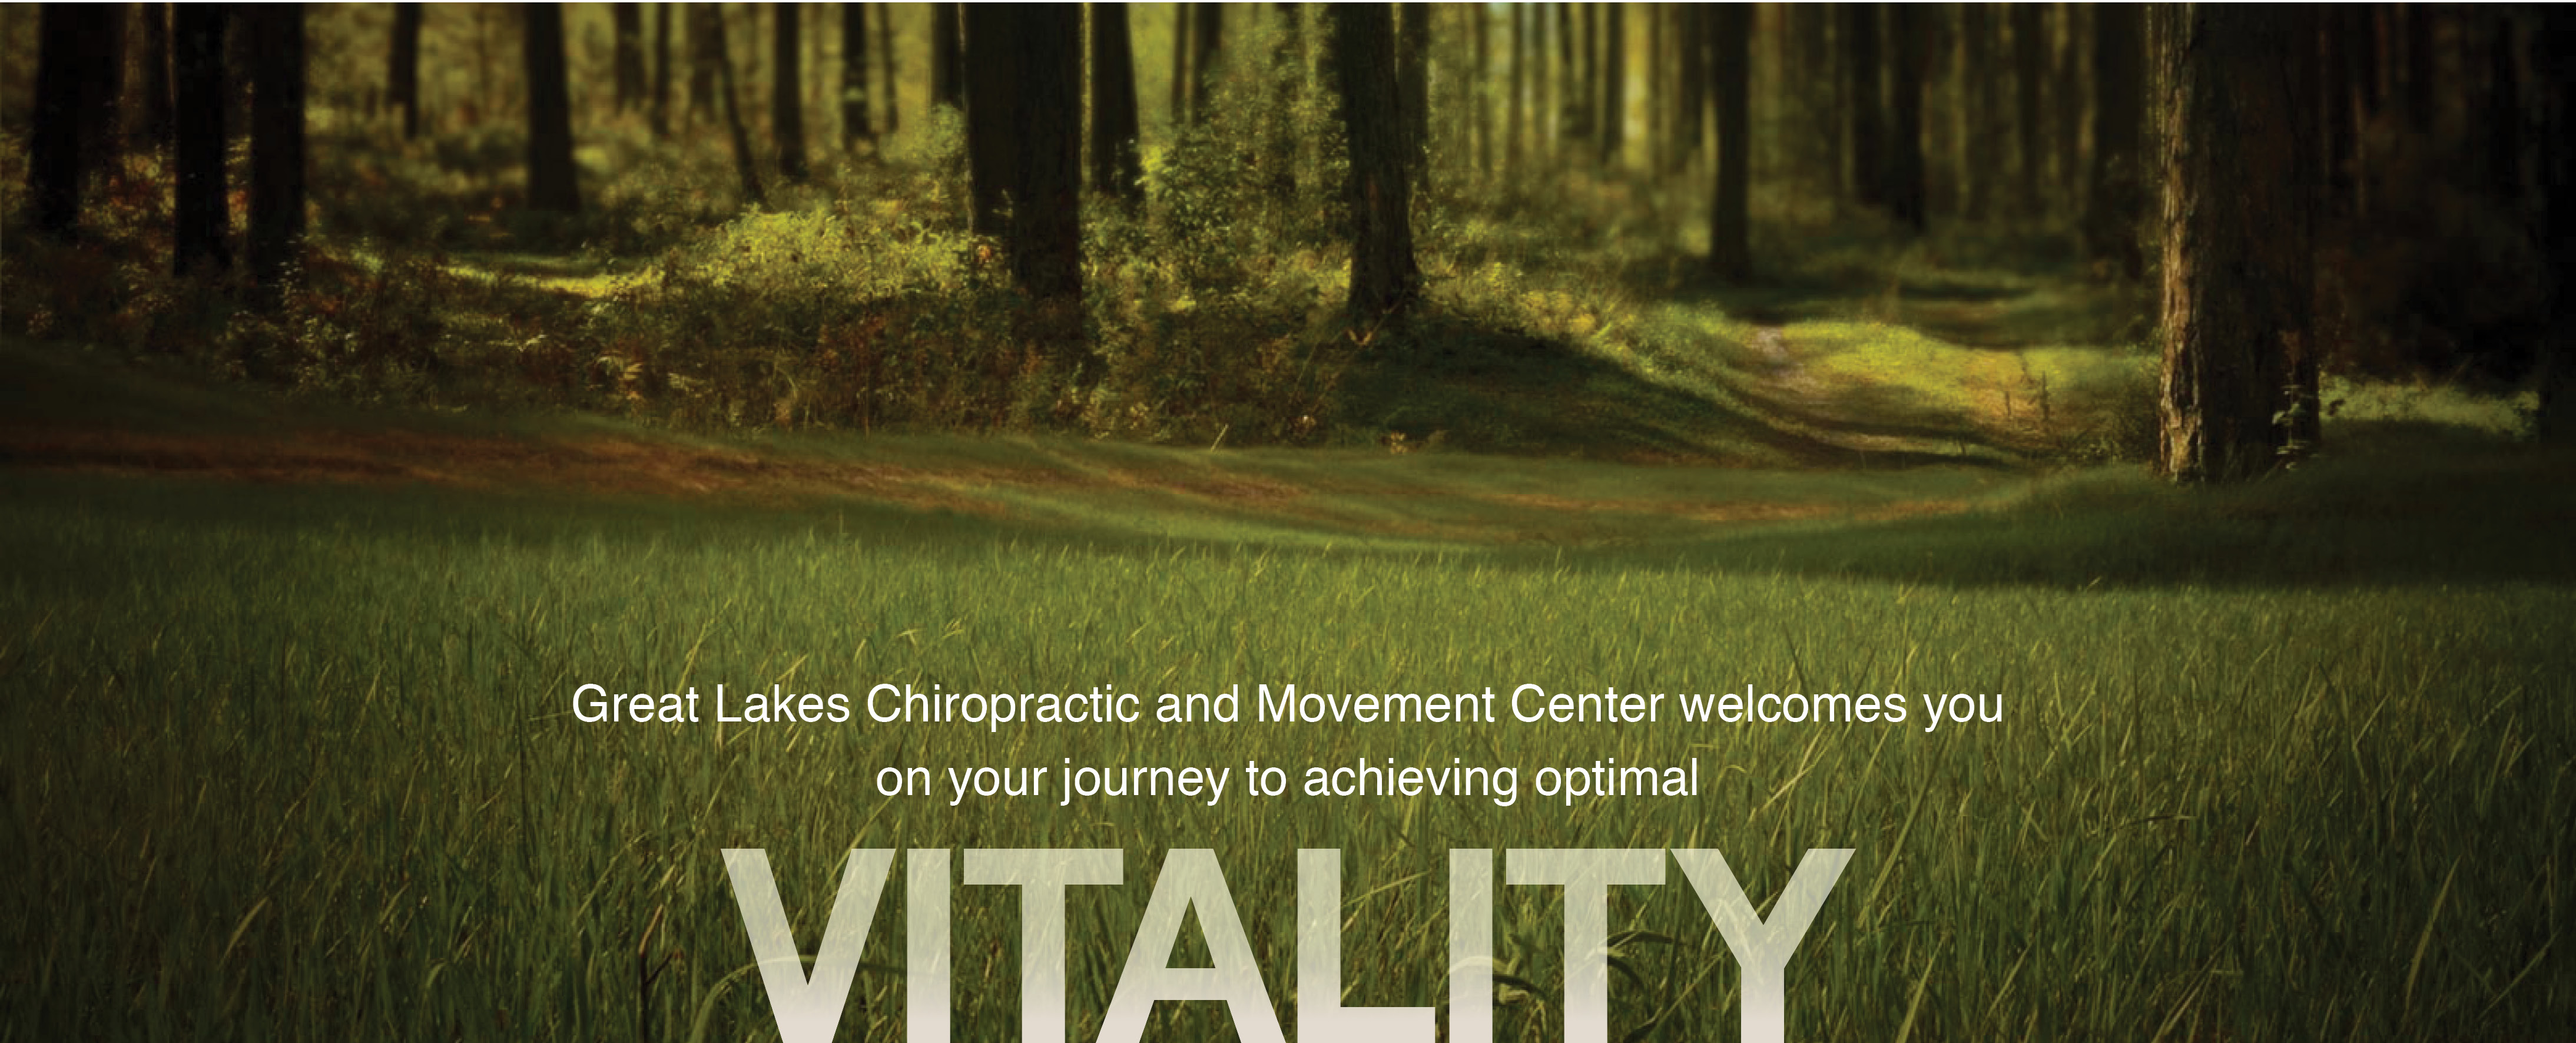 Great-Lakes-Chiropractic-Movement-Center-Nature-Vitality_Slide